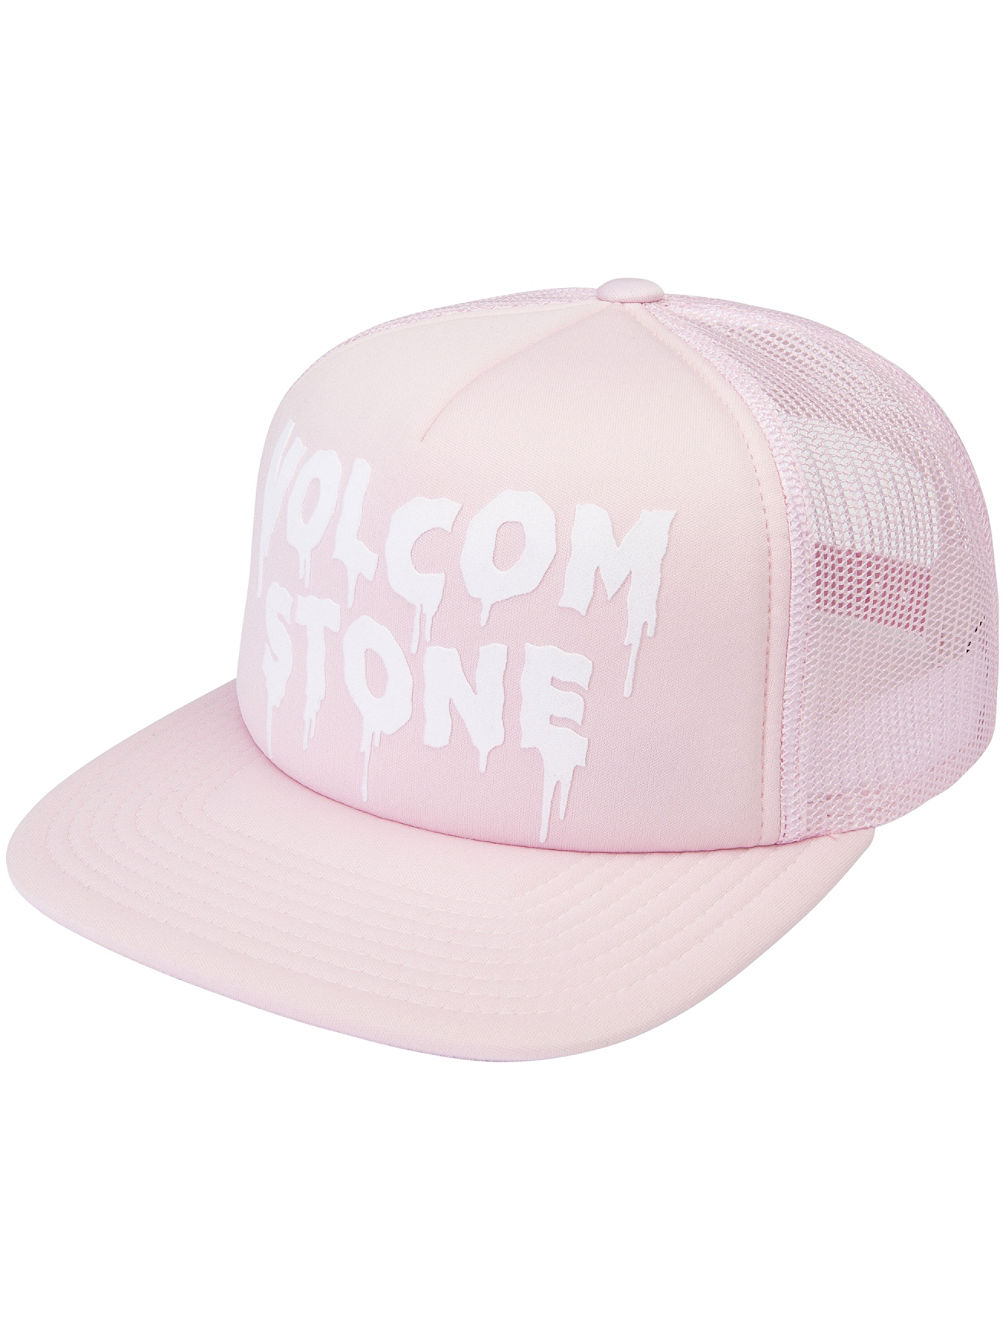 07c72bfdfb7b2 Buy Volcom Liberate Hat online at blue-tomato.com